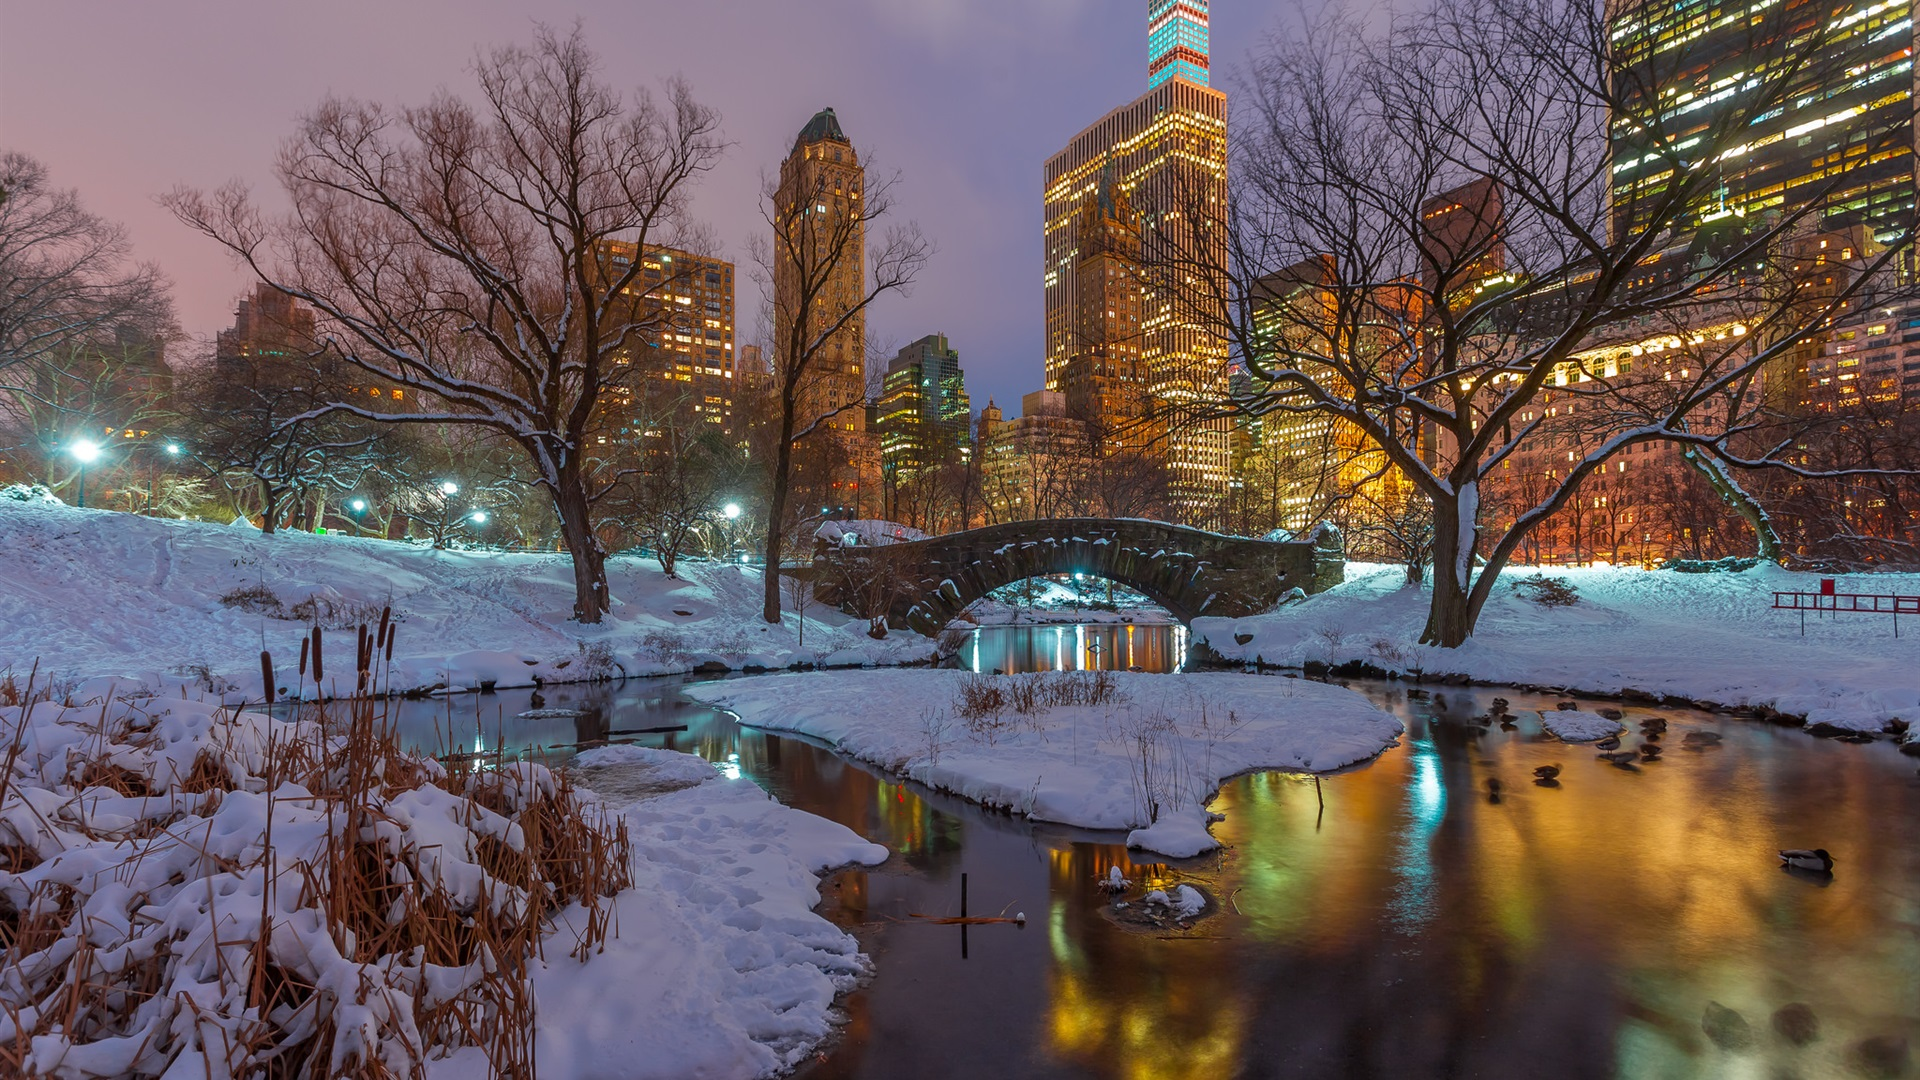 Download wallpaper 1920x1080 new york central park snow - Nyc winter wallpaper hd ...